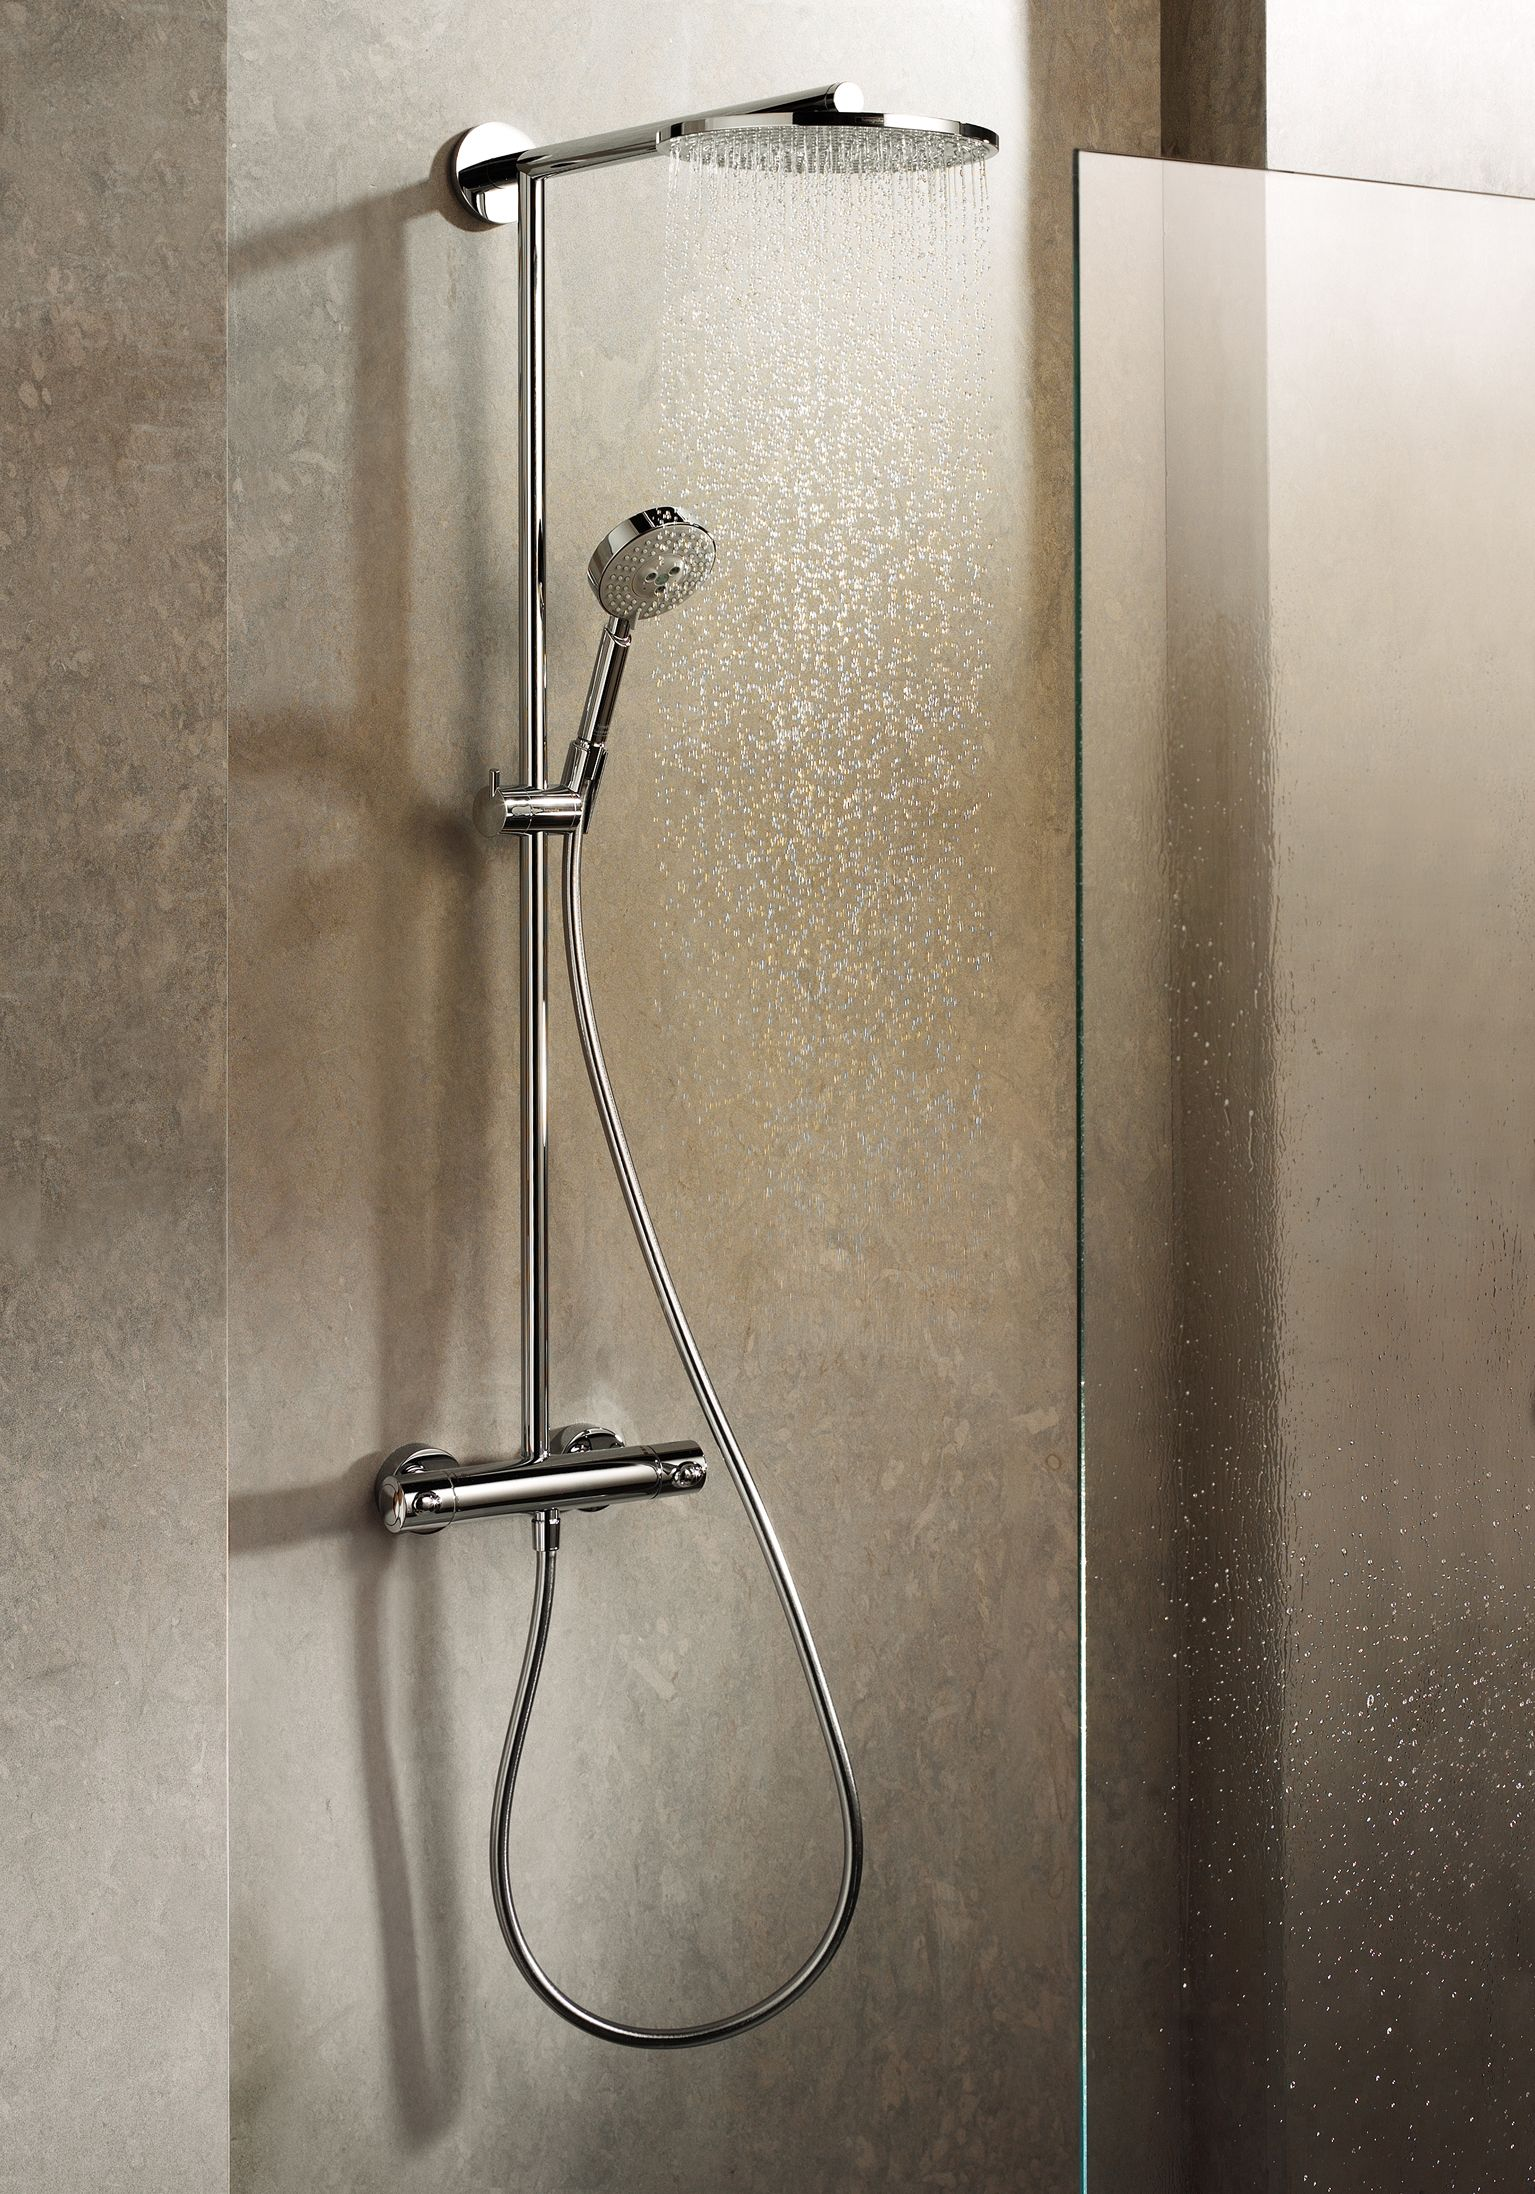 Hans Grohe Hansgrohe Shower System In A Bathroom Setting The Actual Product